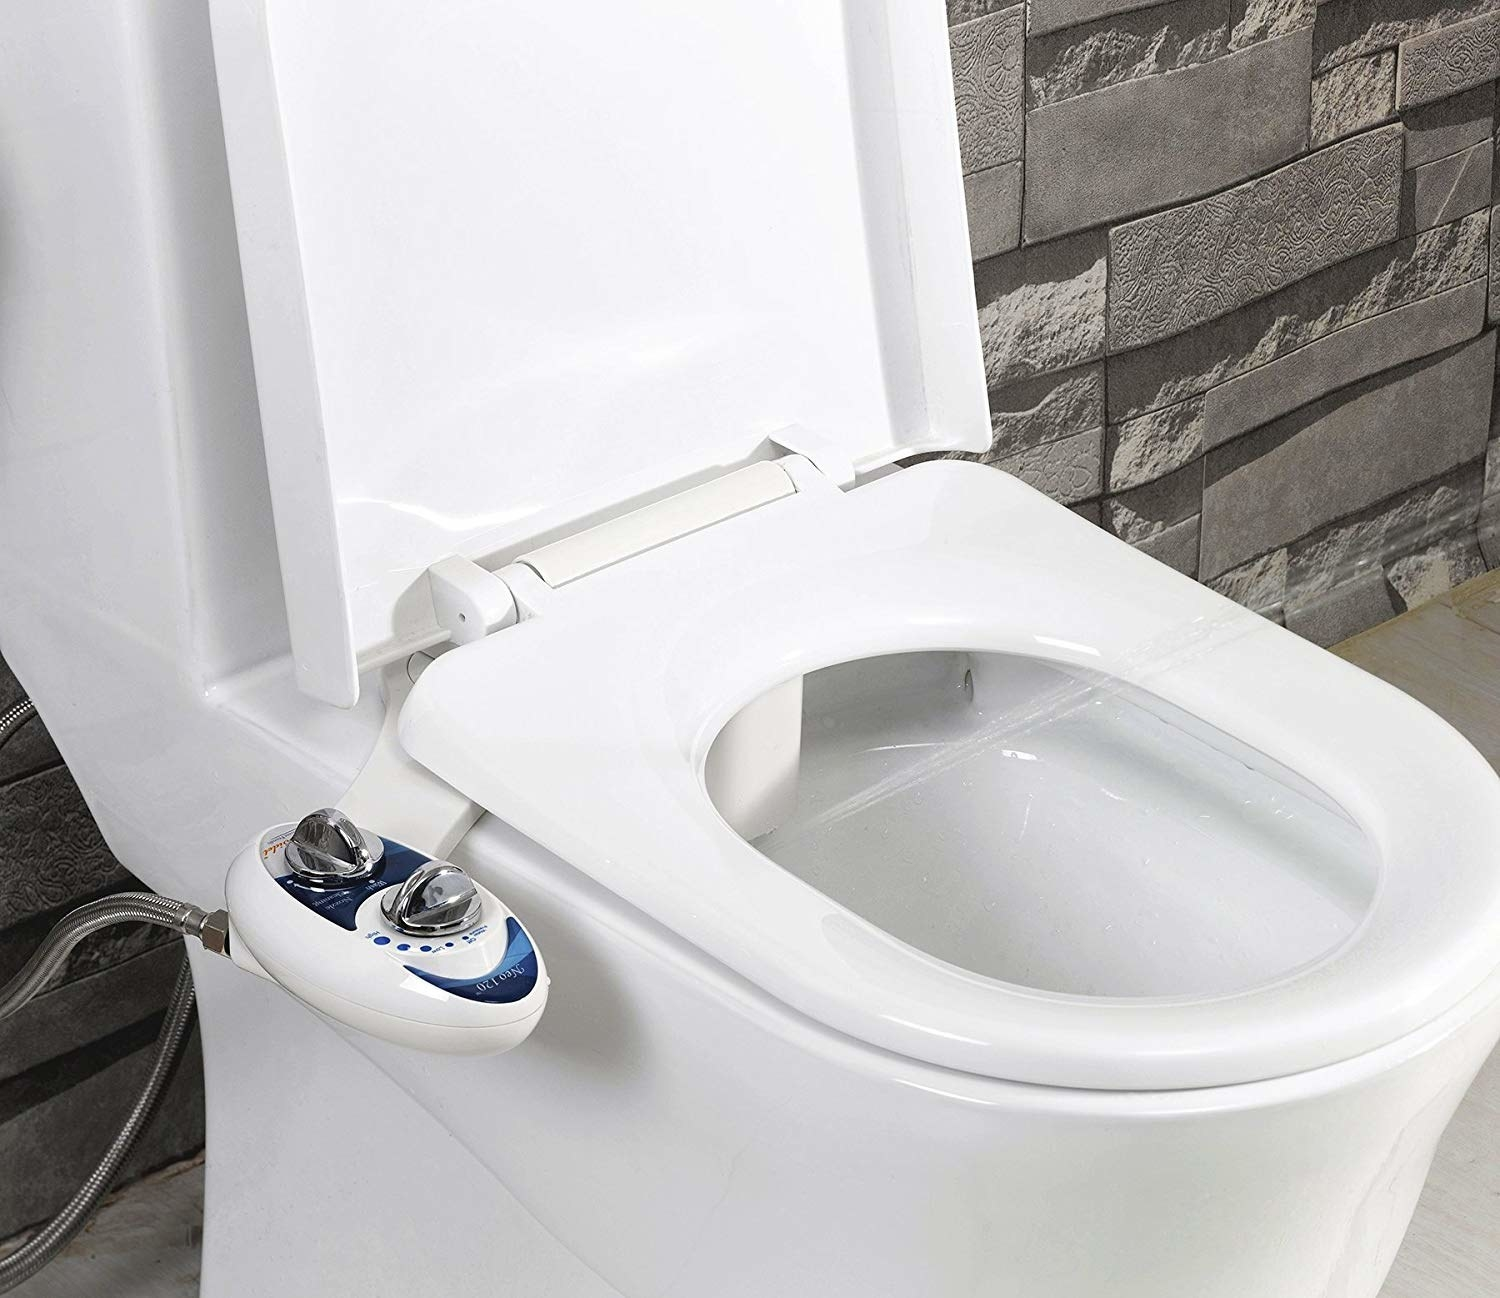 Bidet installed on the side of a toilet